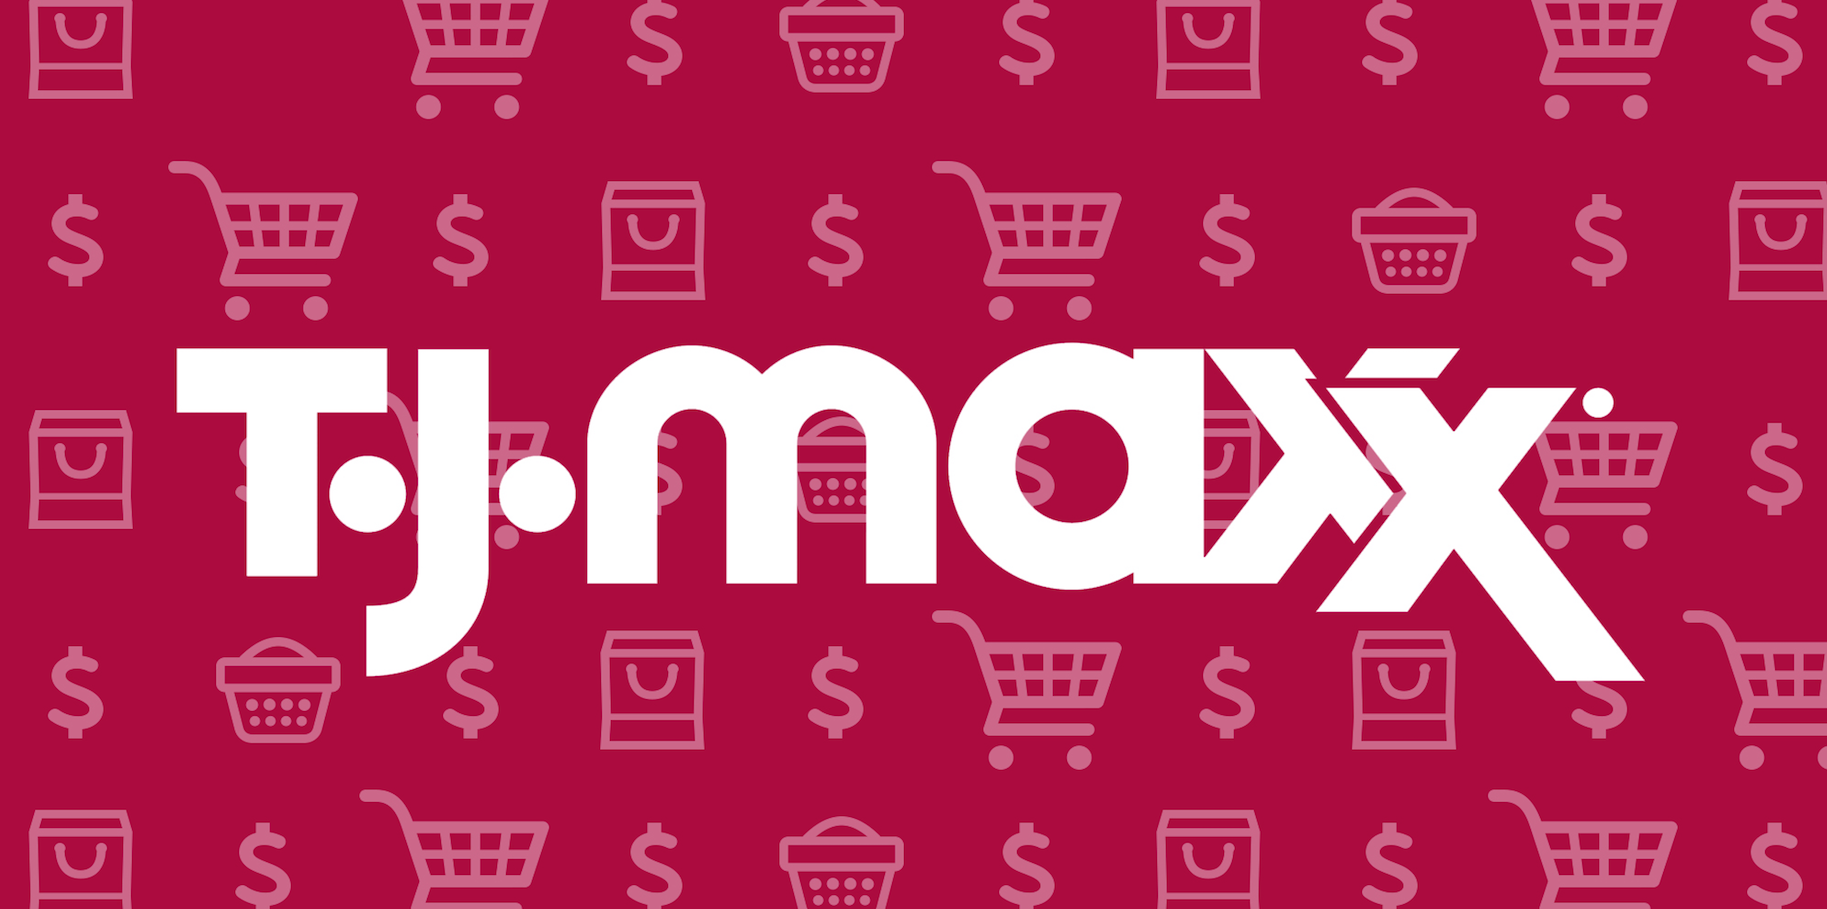 e55ded30d8c8 Best T.J. Maxx Shopping Secrets - T.J. Maxx Coupons, Cards, And Deals